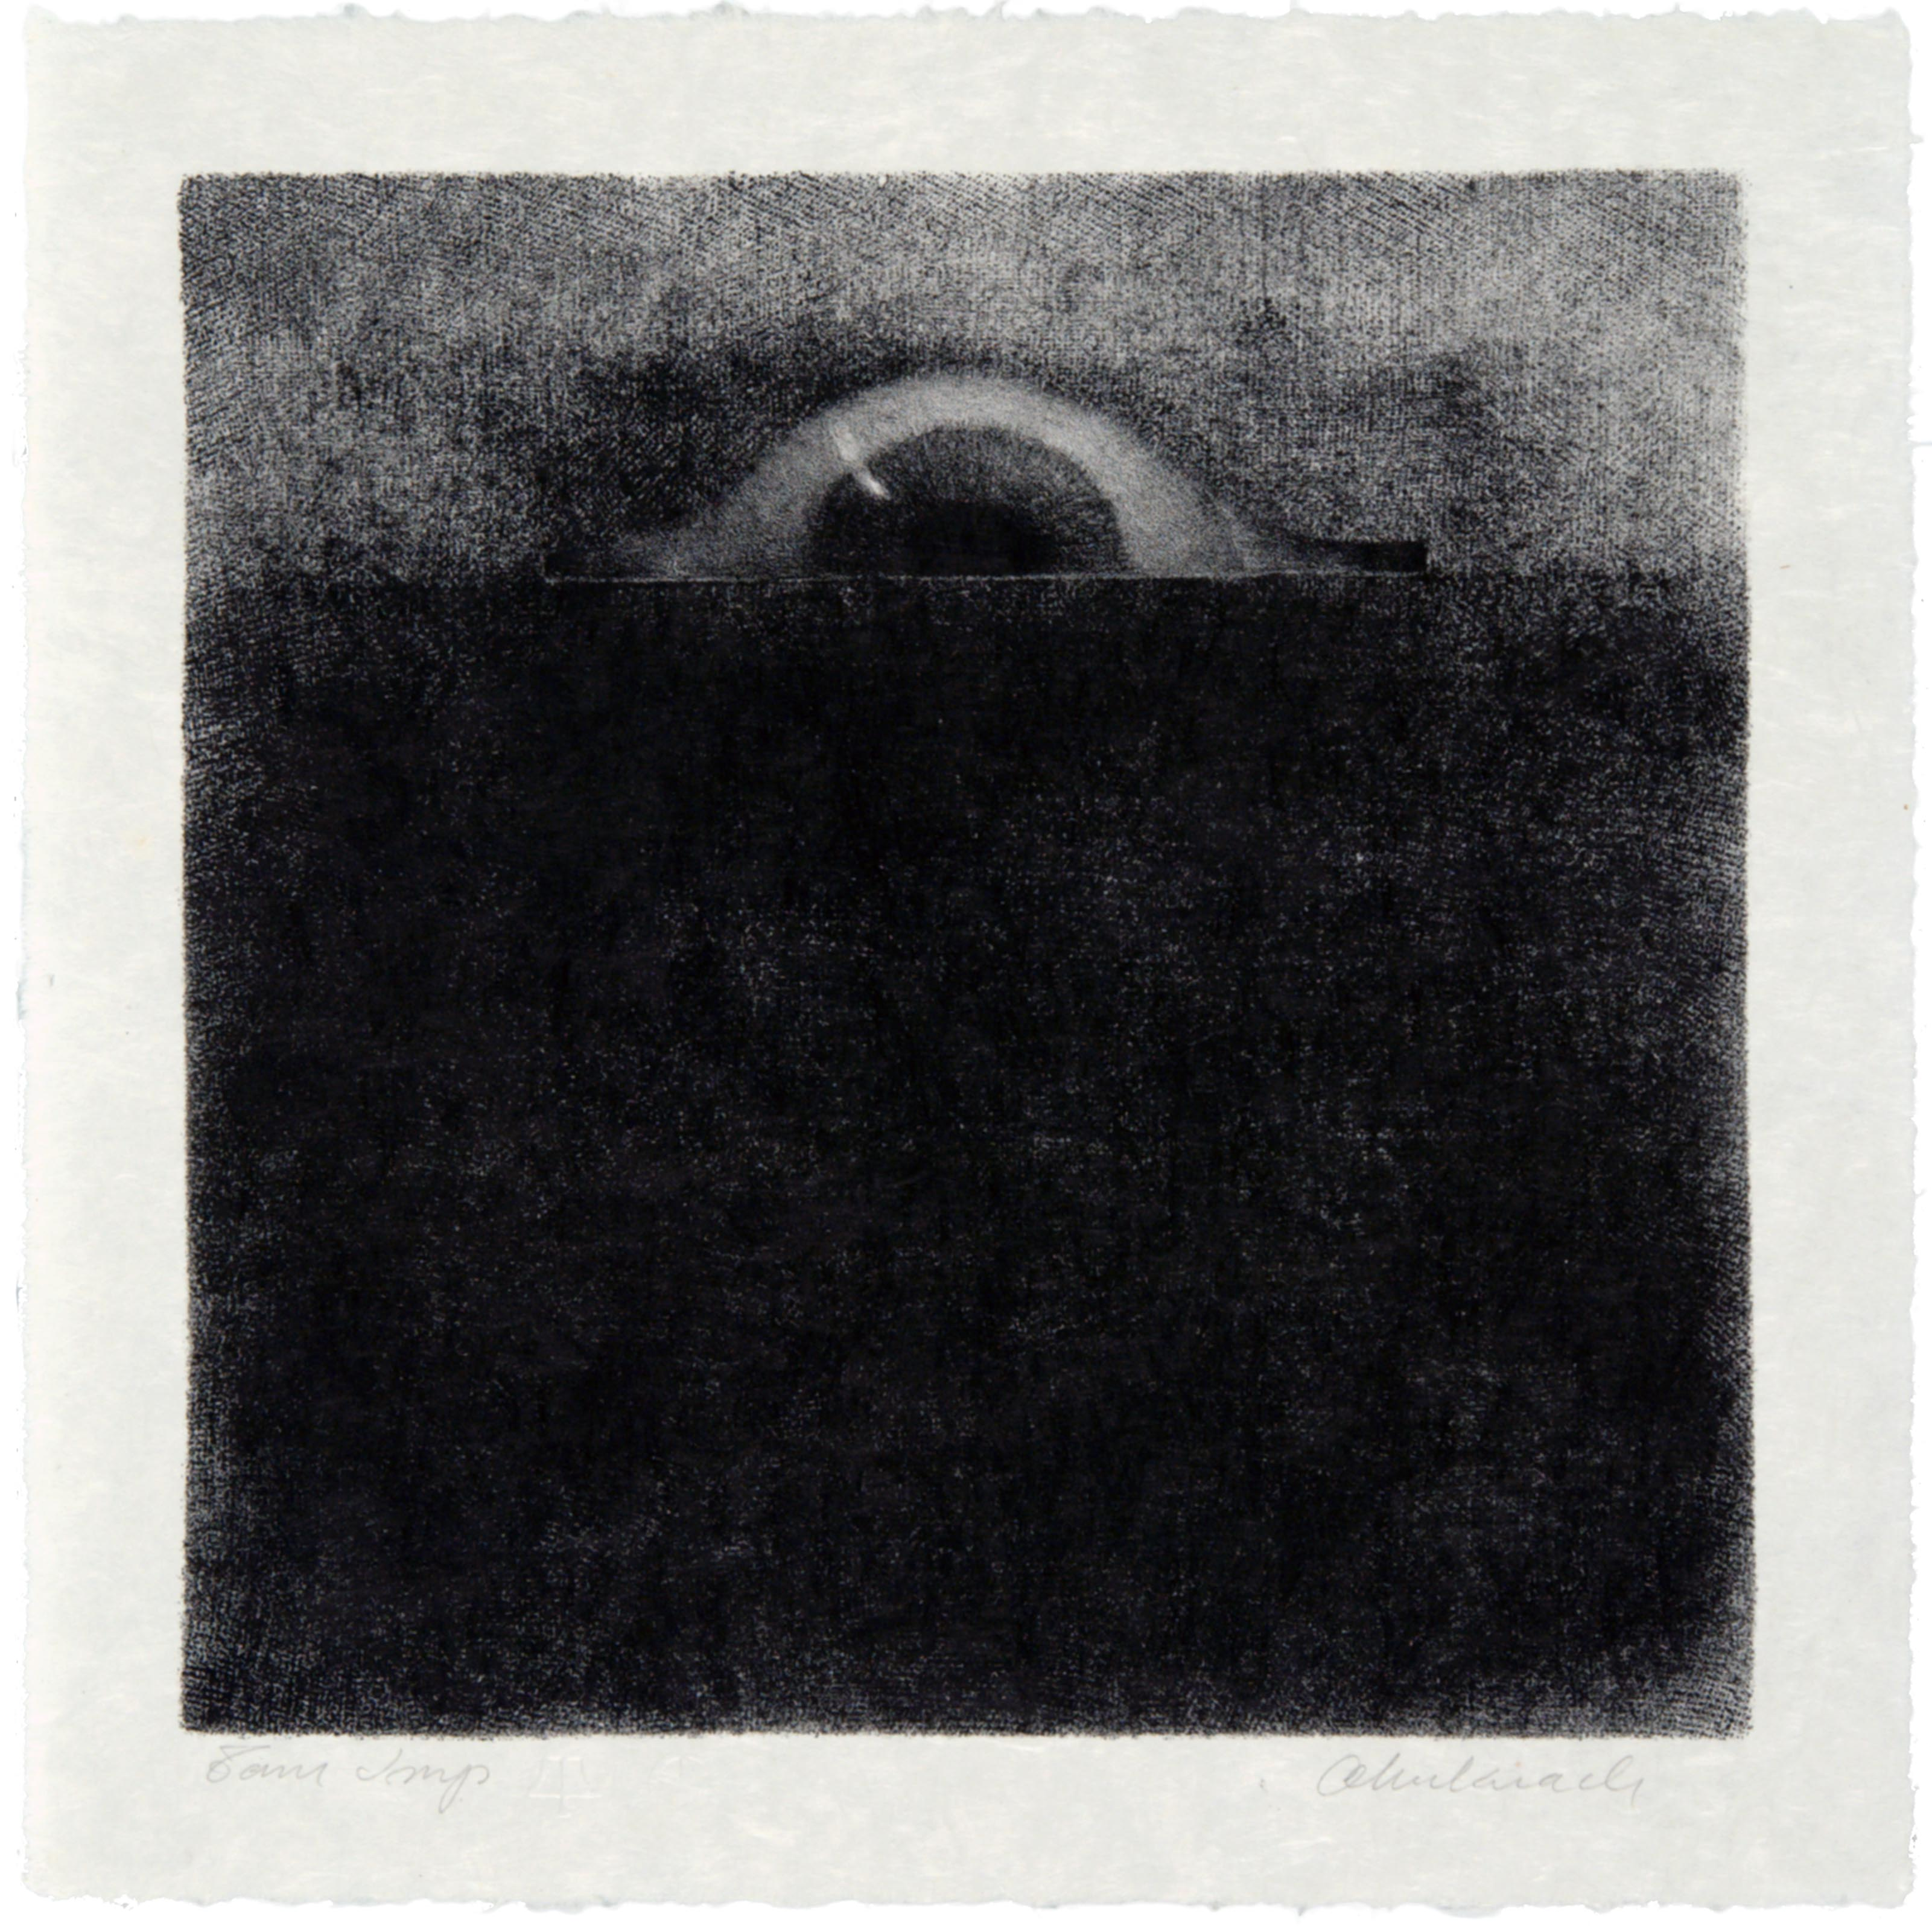 Rodolfo Abularach, Untitled (V), November 7-16,1966